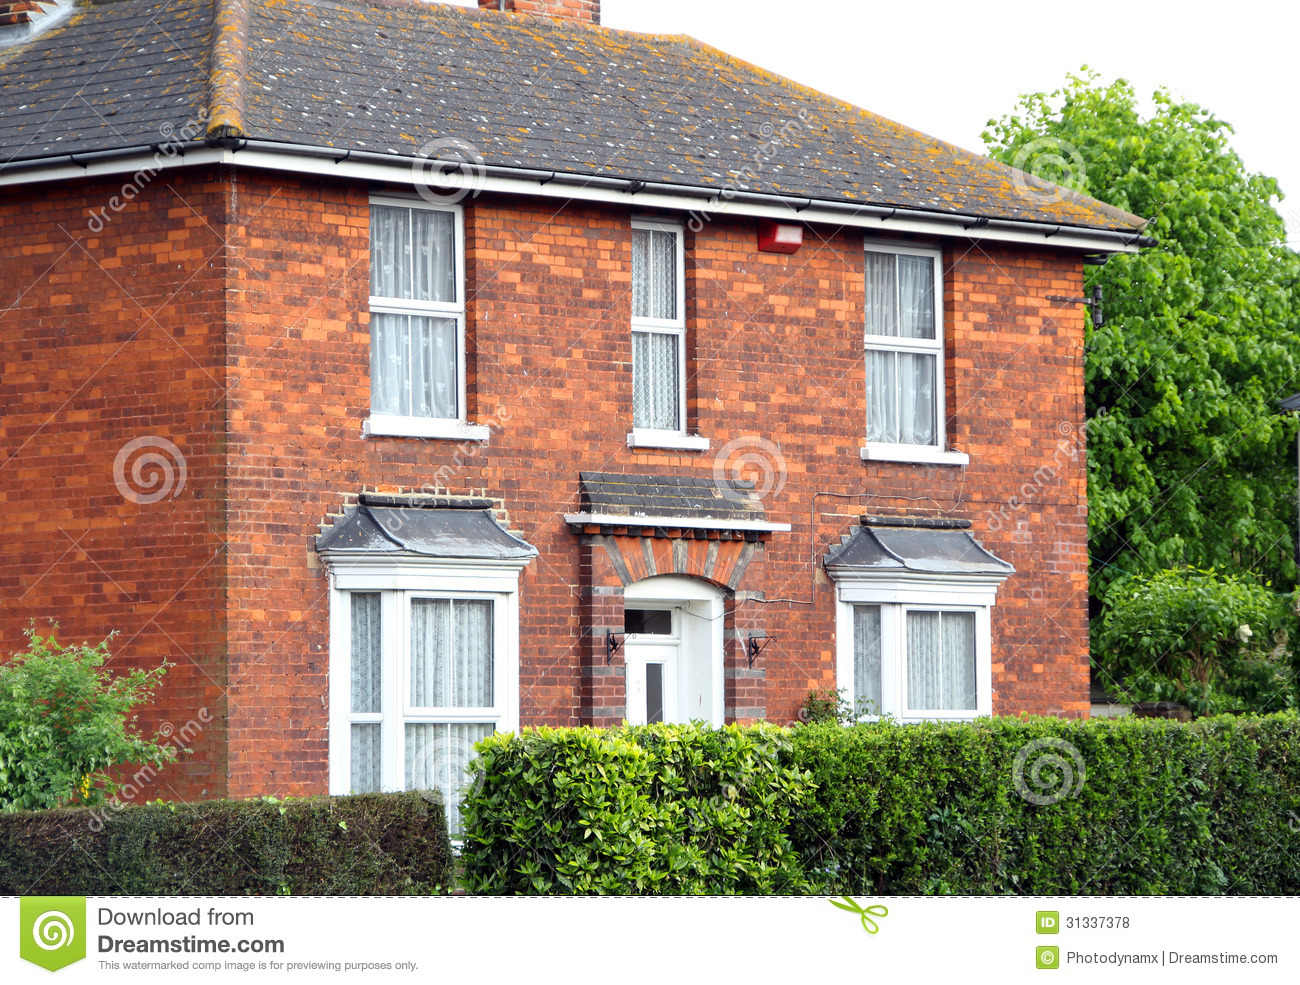 Edwardian house royalty free stock photos image 31337378 for Brick victorian house